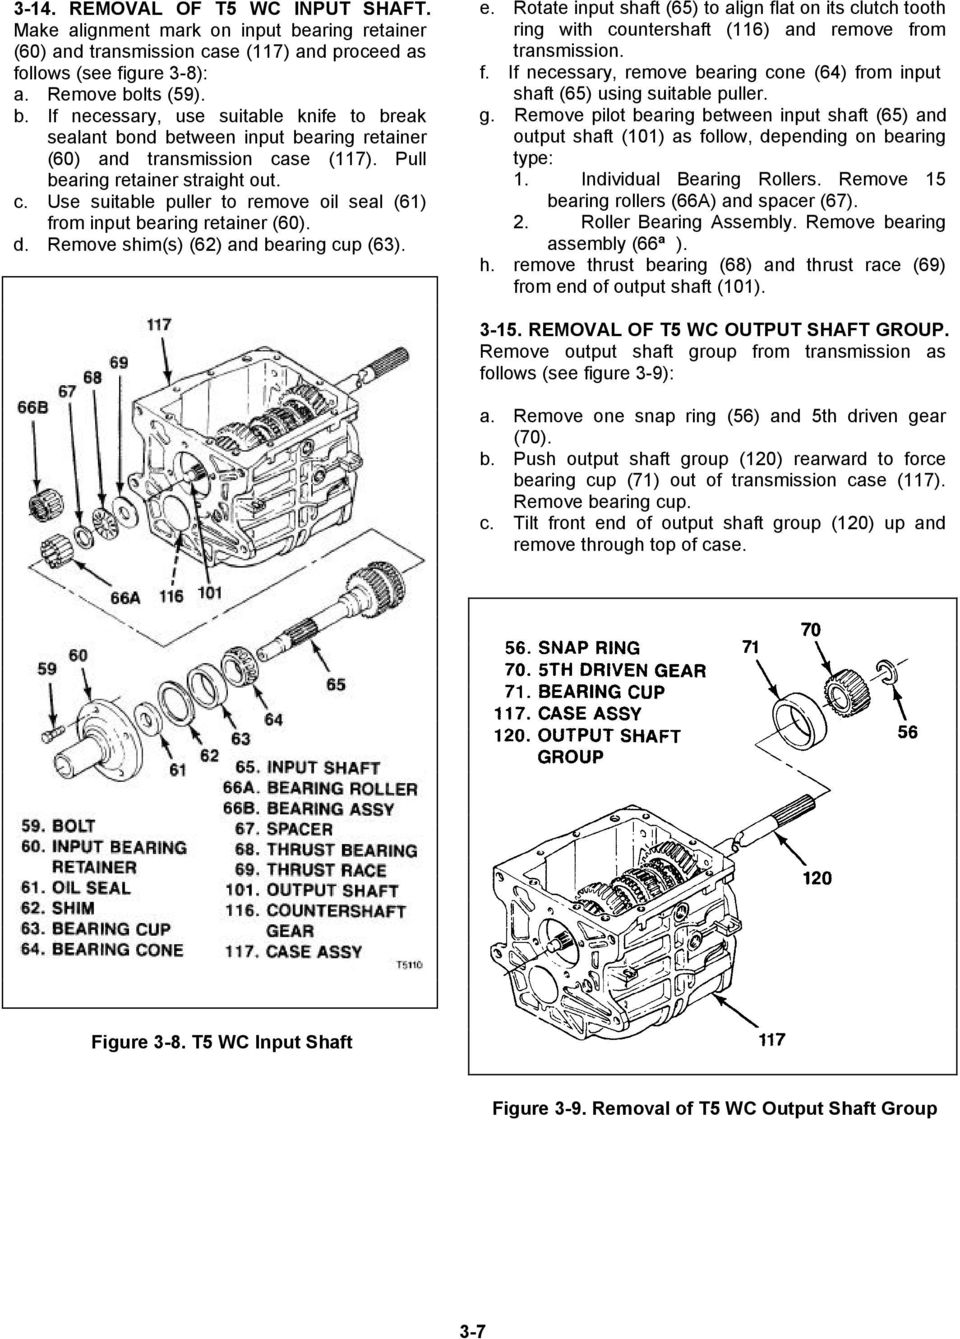 Rotate input shaft (65) to align flat on its clutch tooth ring with countershaft (6) and remove from transmission. f. If necessary, remove bearing cone (64) from input shaft (65) using suitable puller.